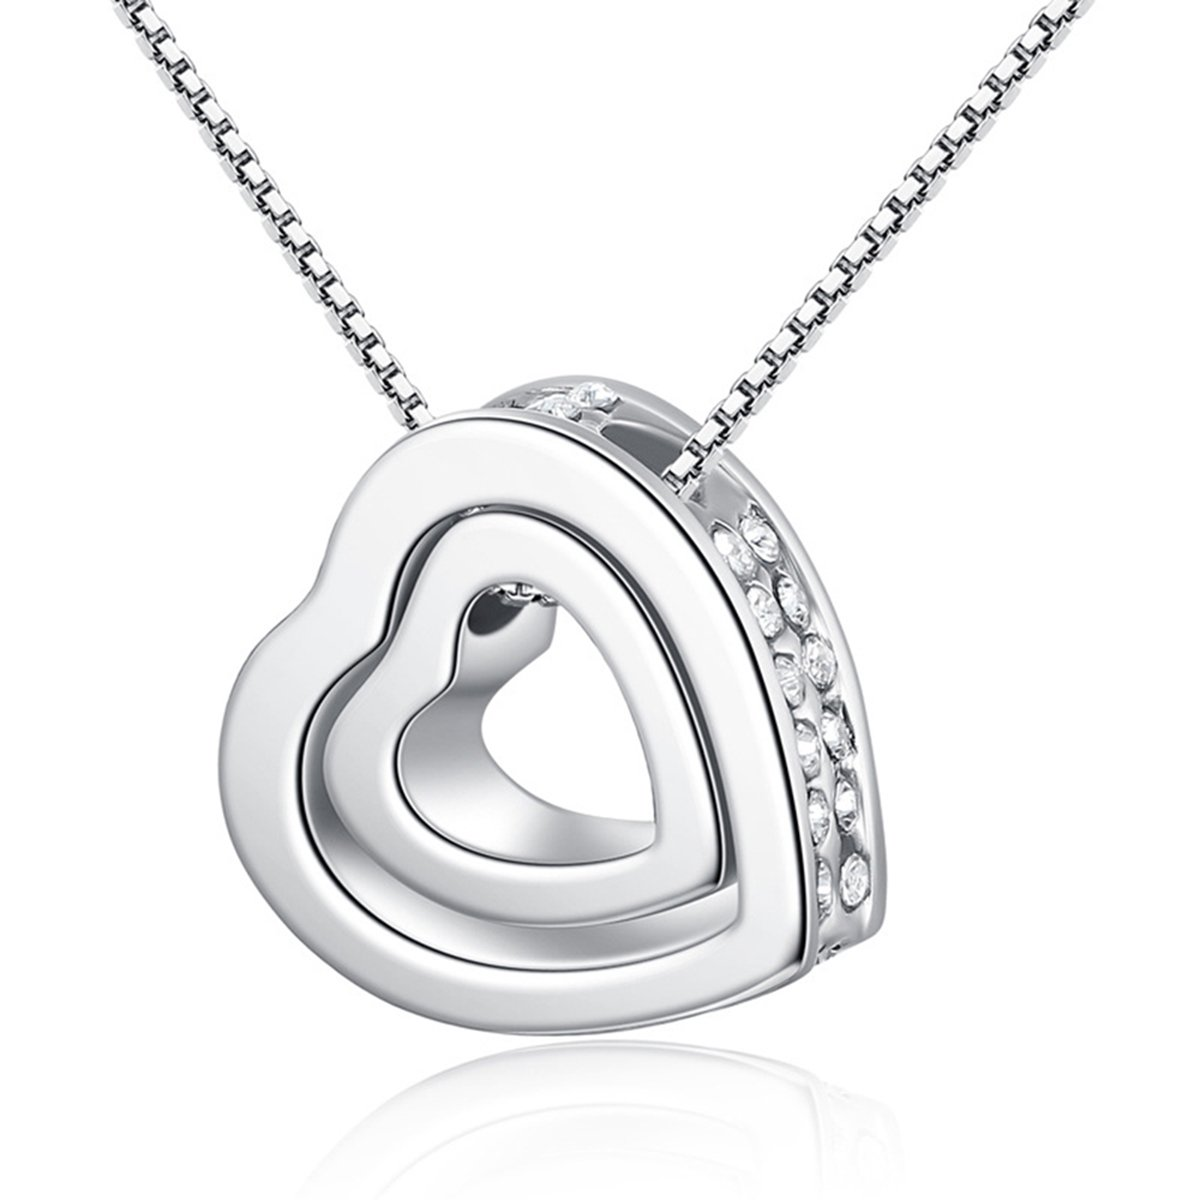 Double Love Heart Pendant Necklace Made with SWAROVSKI Crystal for women